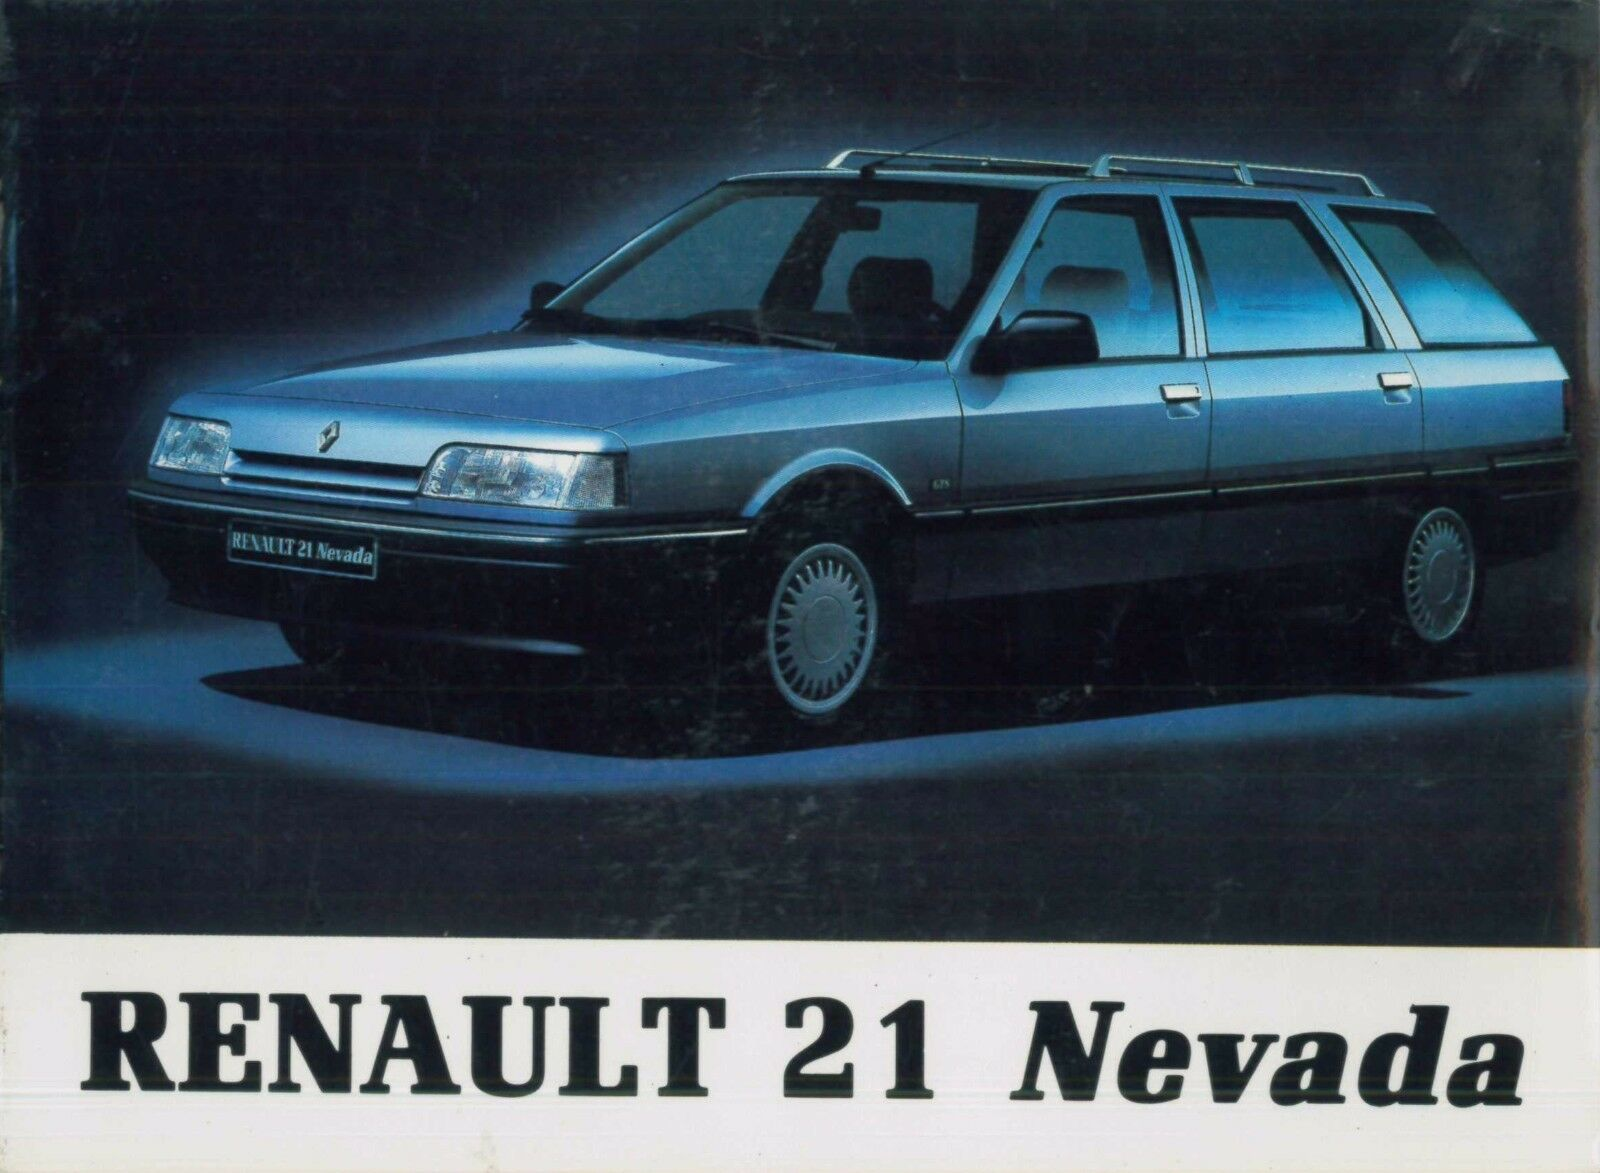 1990 renault 21 nevada betriebsanleitung handbuch owner 39 s manual deutsch eur 19 99 picclick de. Black Bedroom Furniture Sets. Home Design Ideas